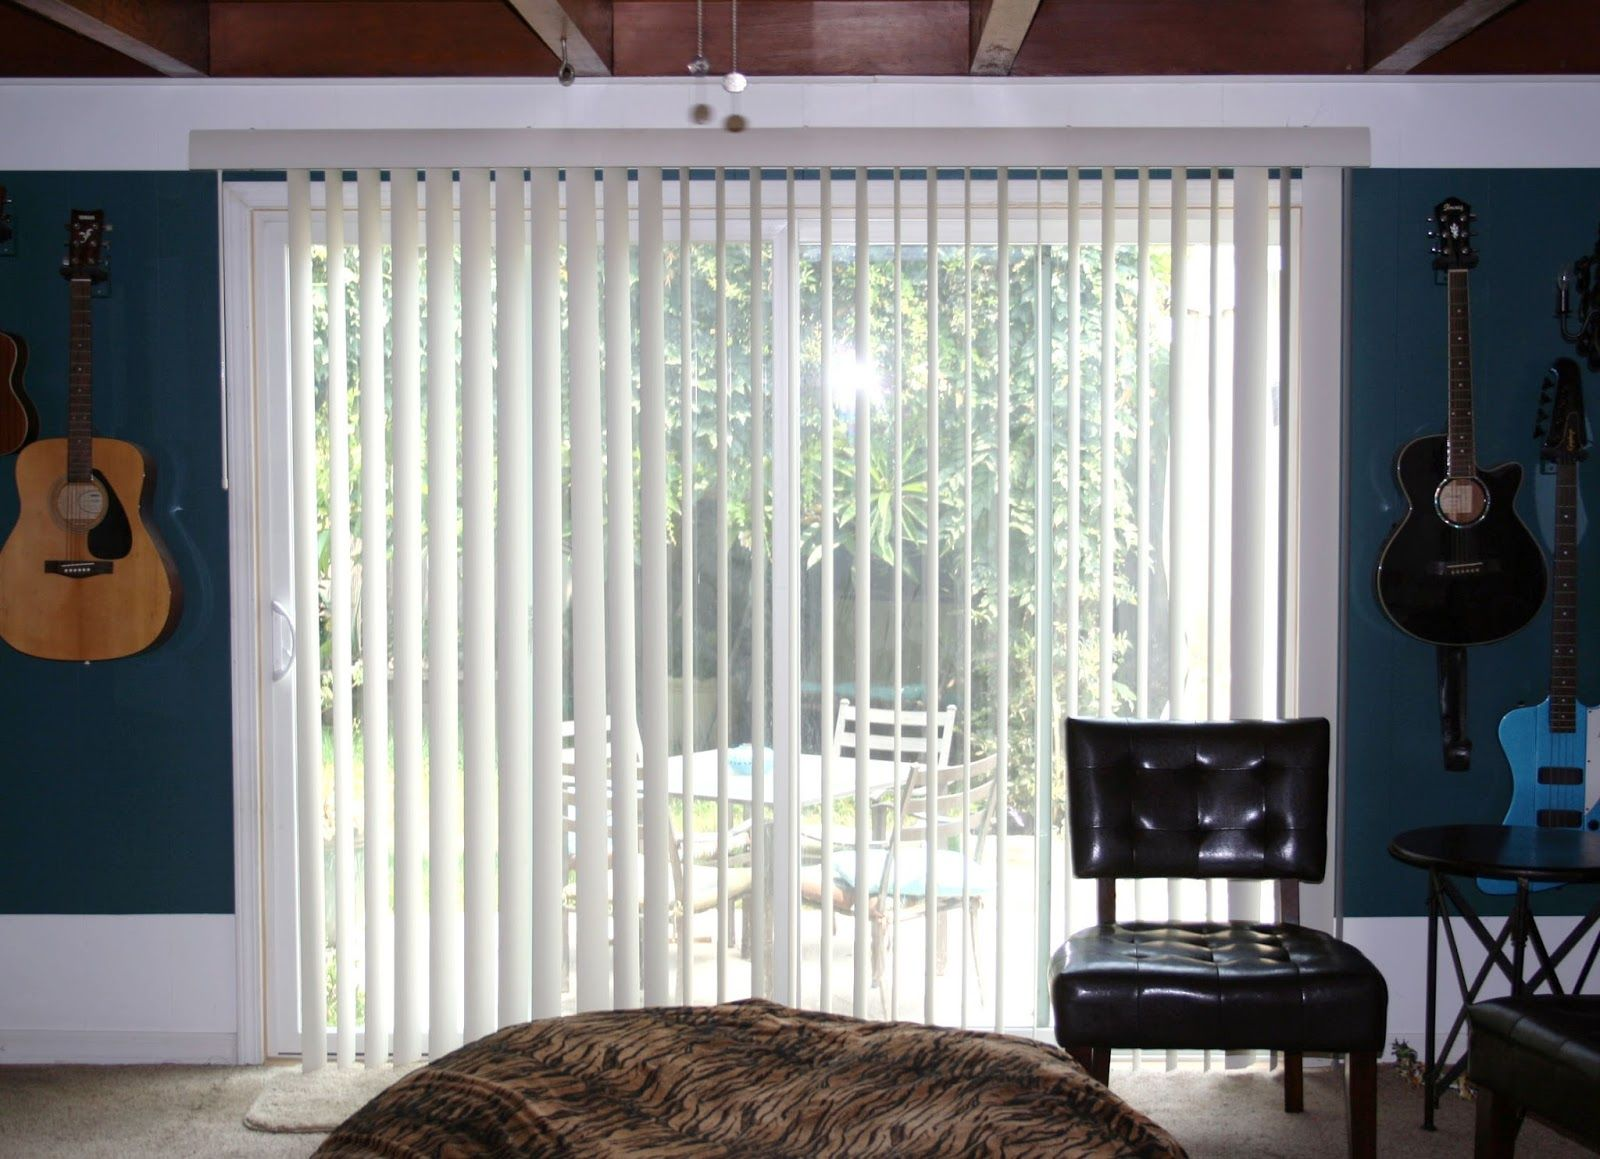 Diy Vertical Blinds Hanging Curtains On A Vertical Blind Track Creating A